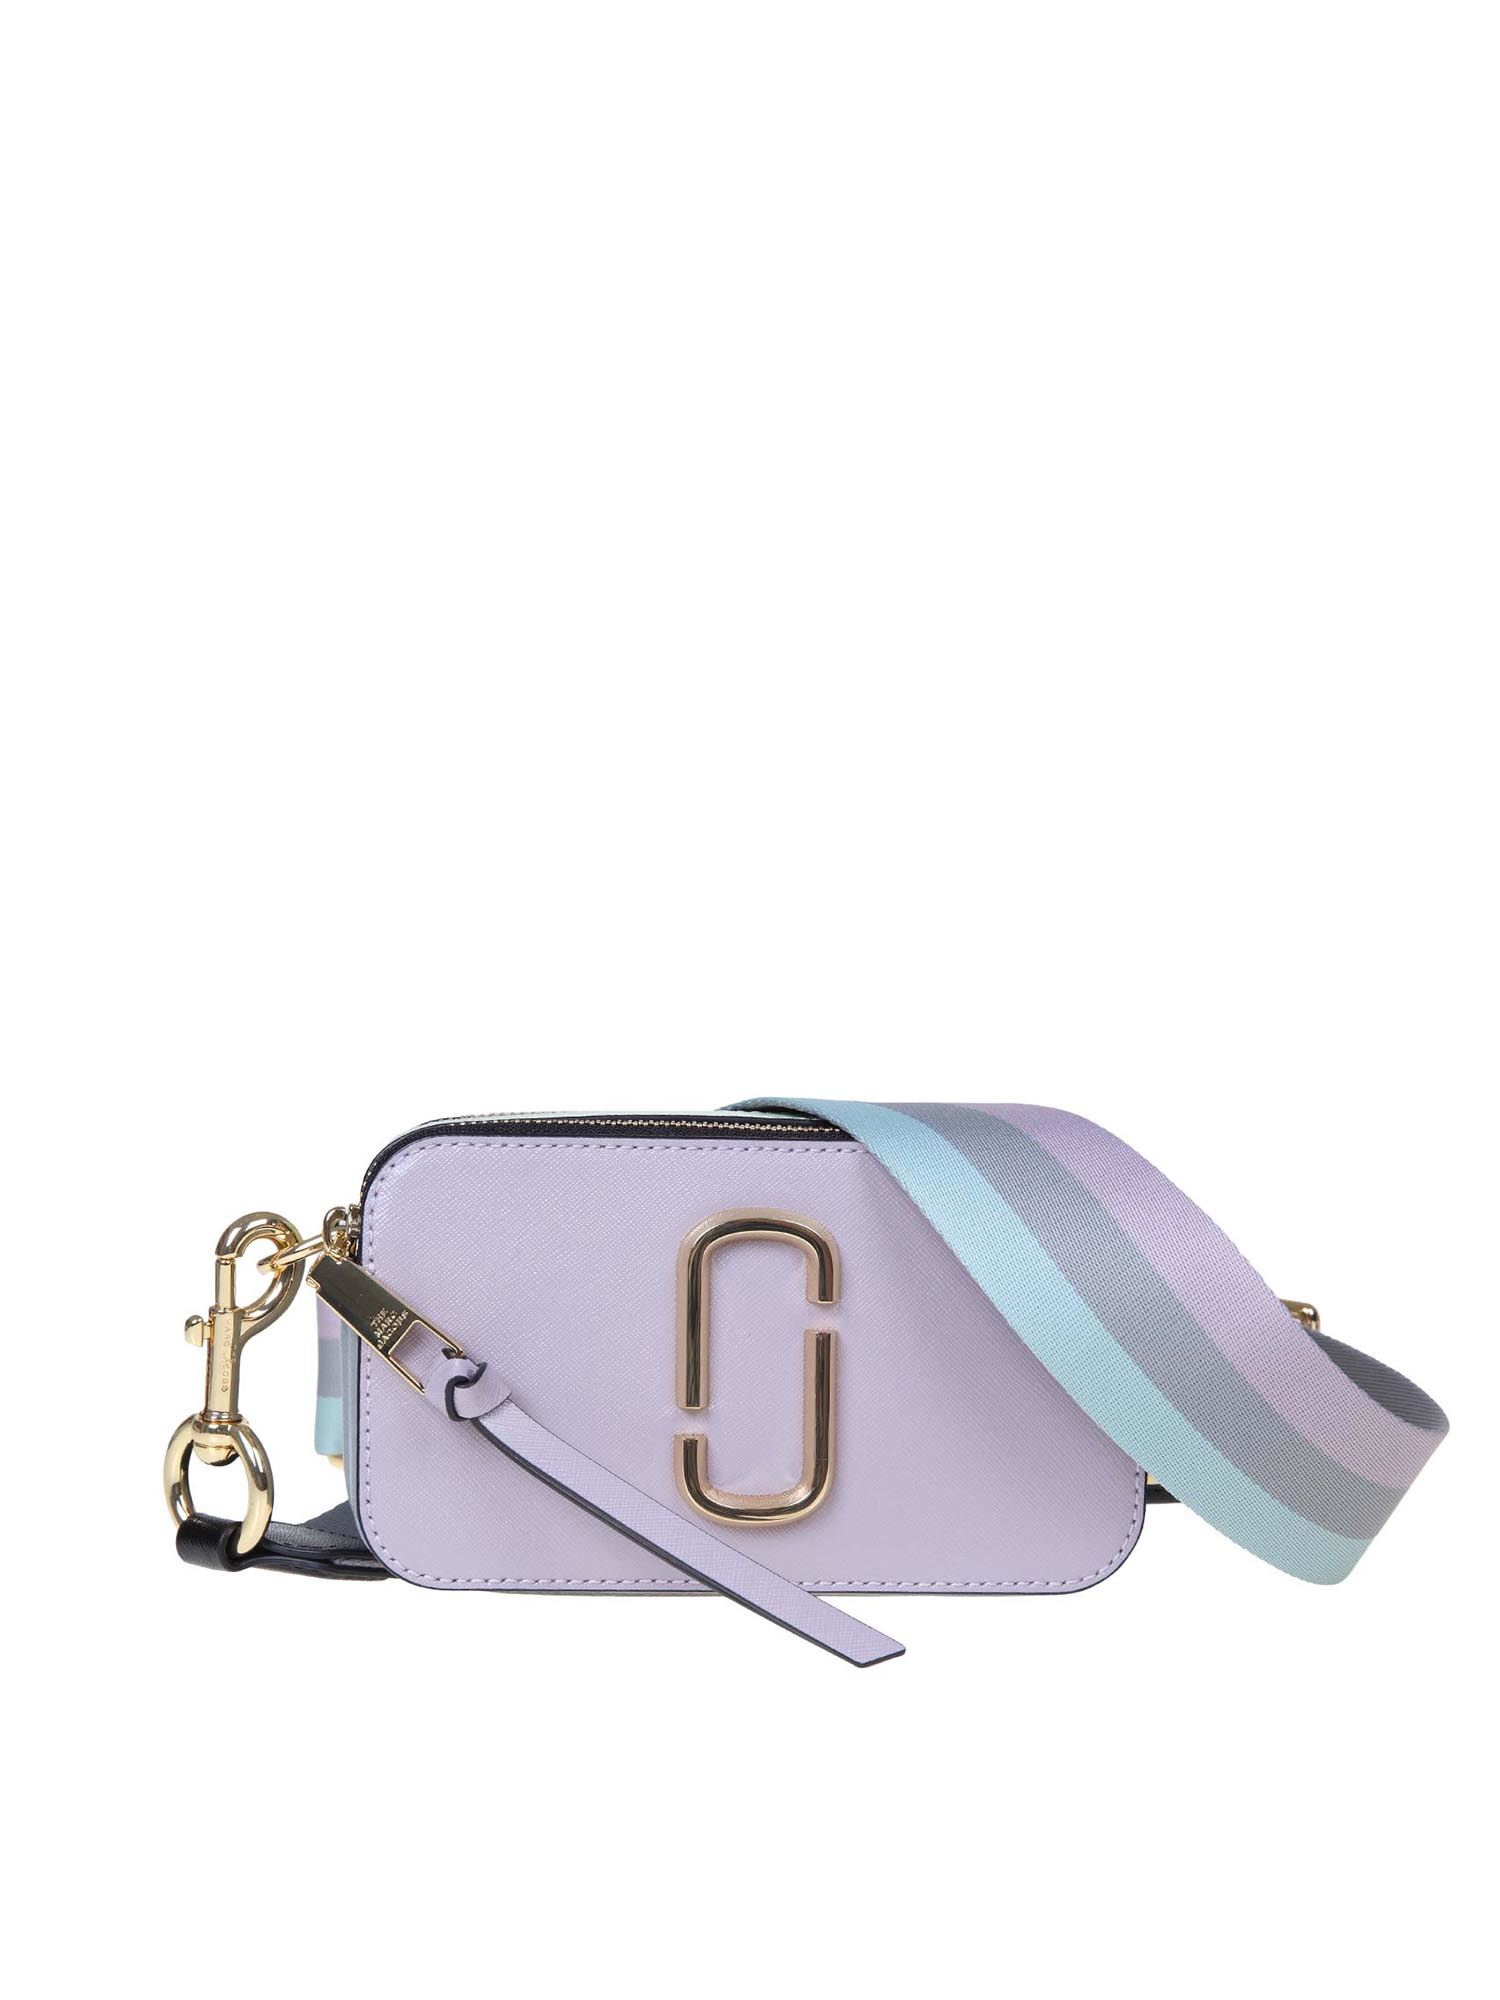 Marc Jacobs THE SNAPSHOT SUGAR LILAC AND LIGHT BLUE BAG